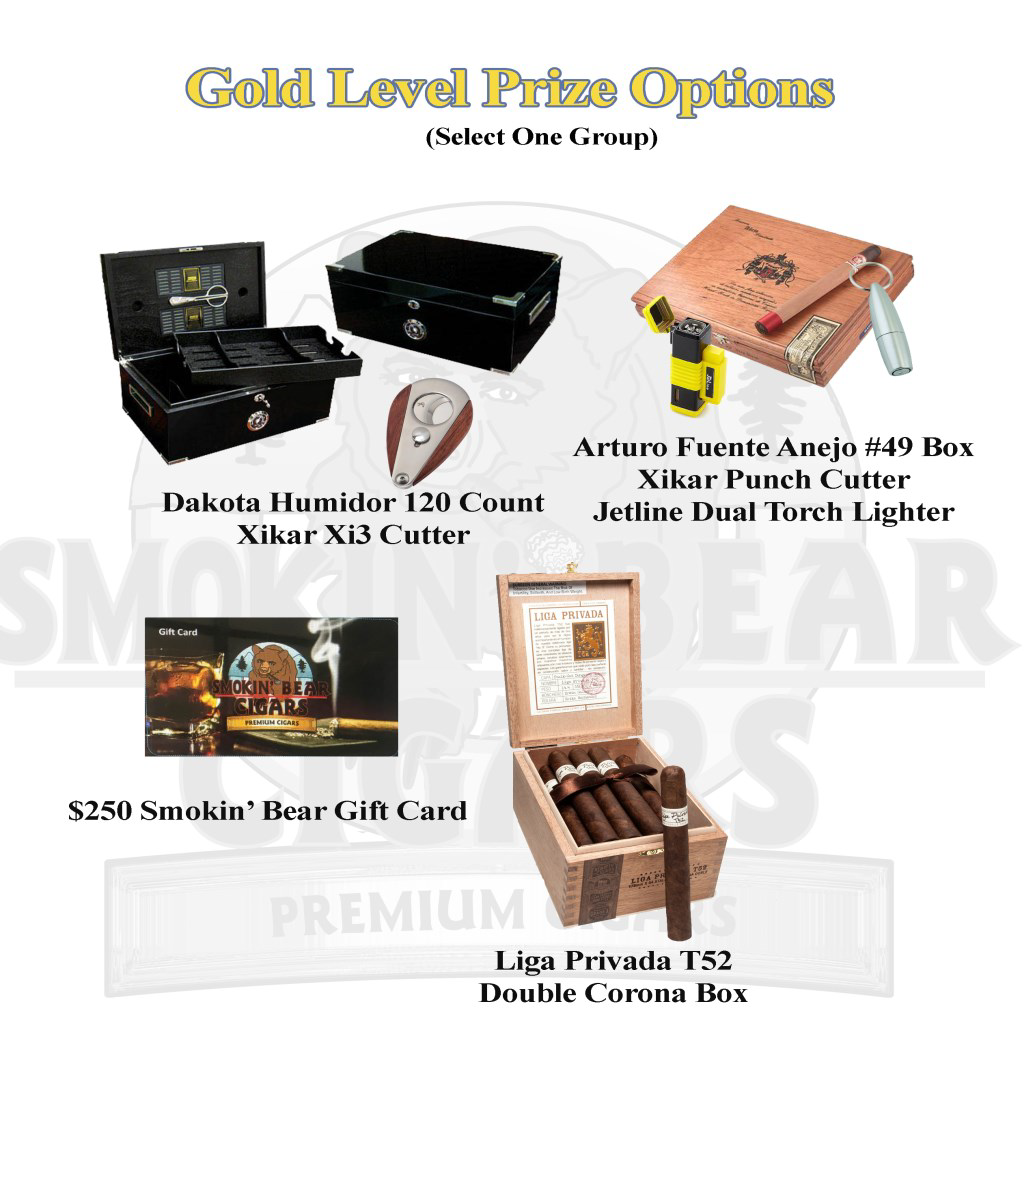 Gold Level Prize Options